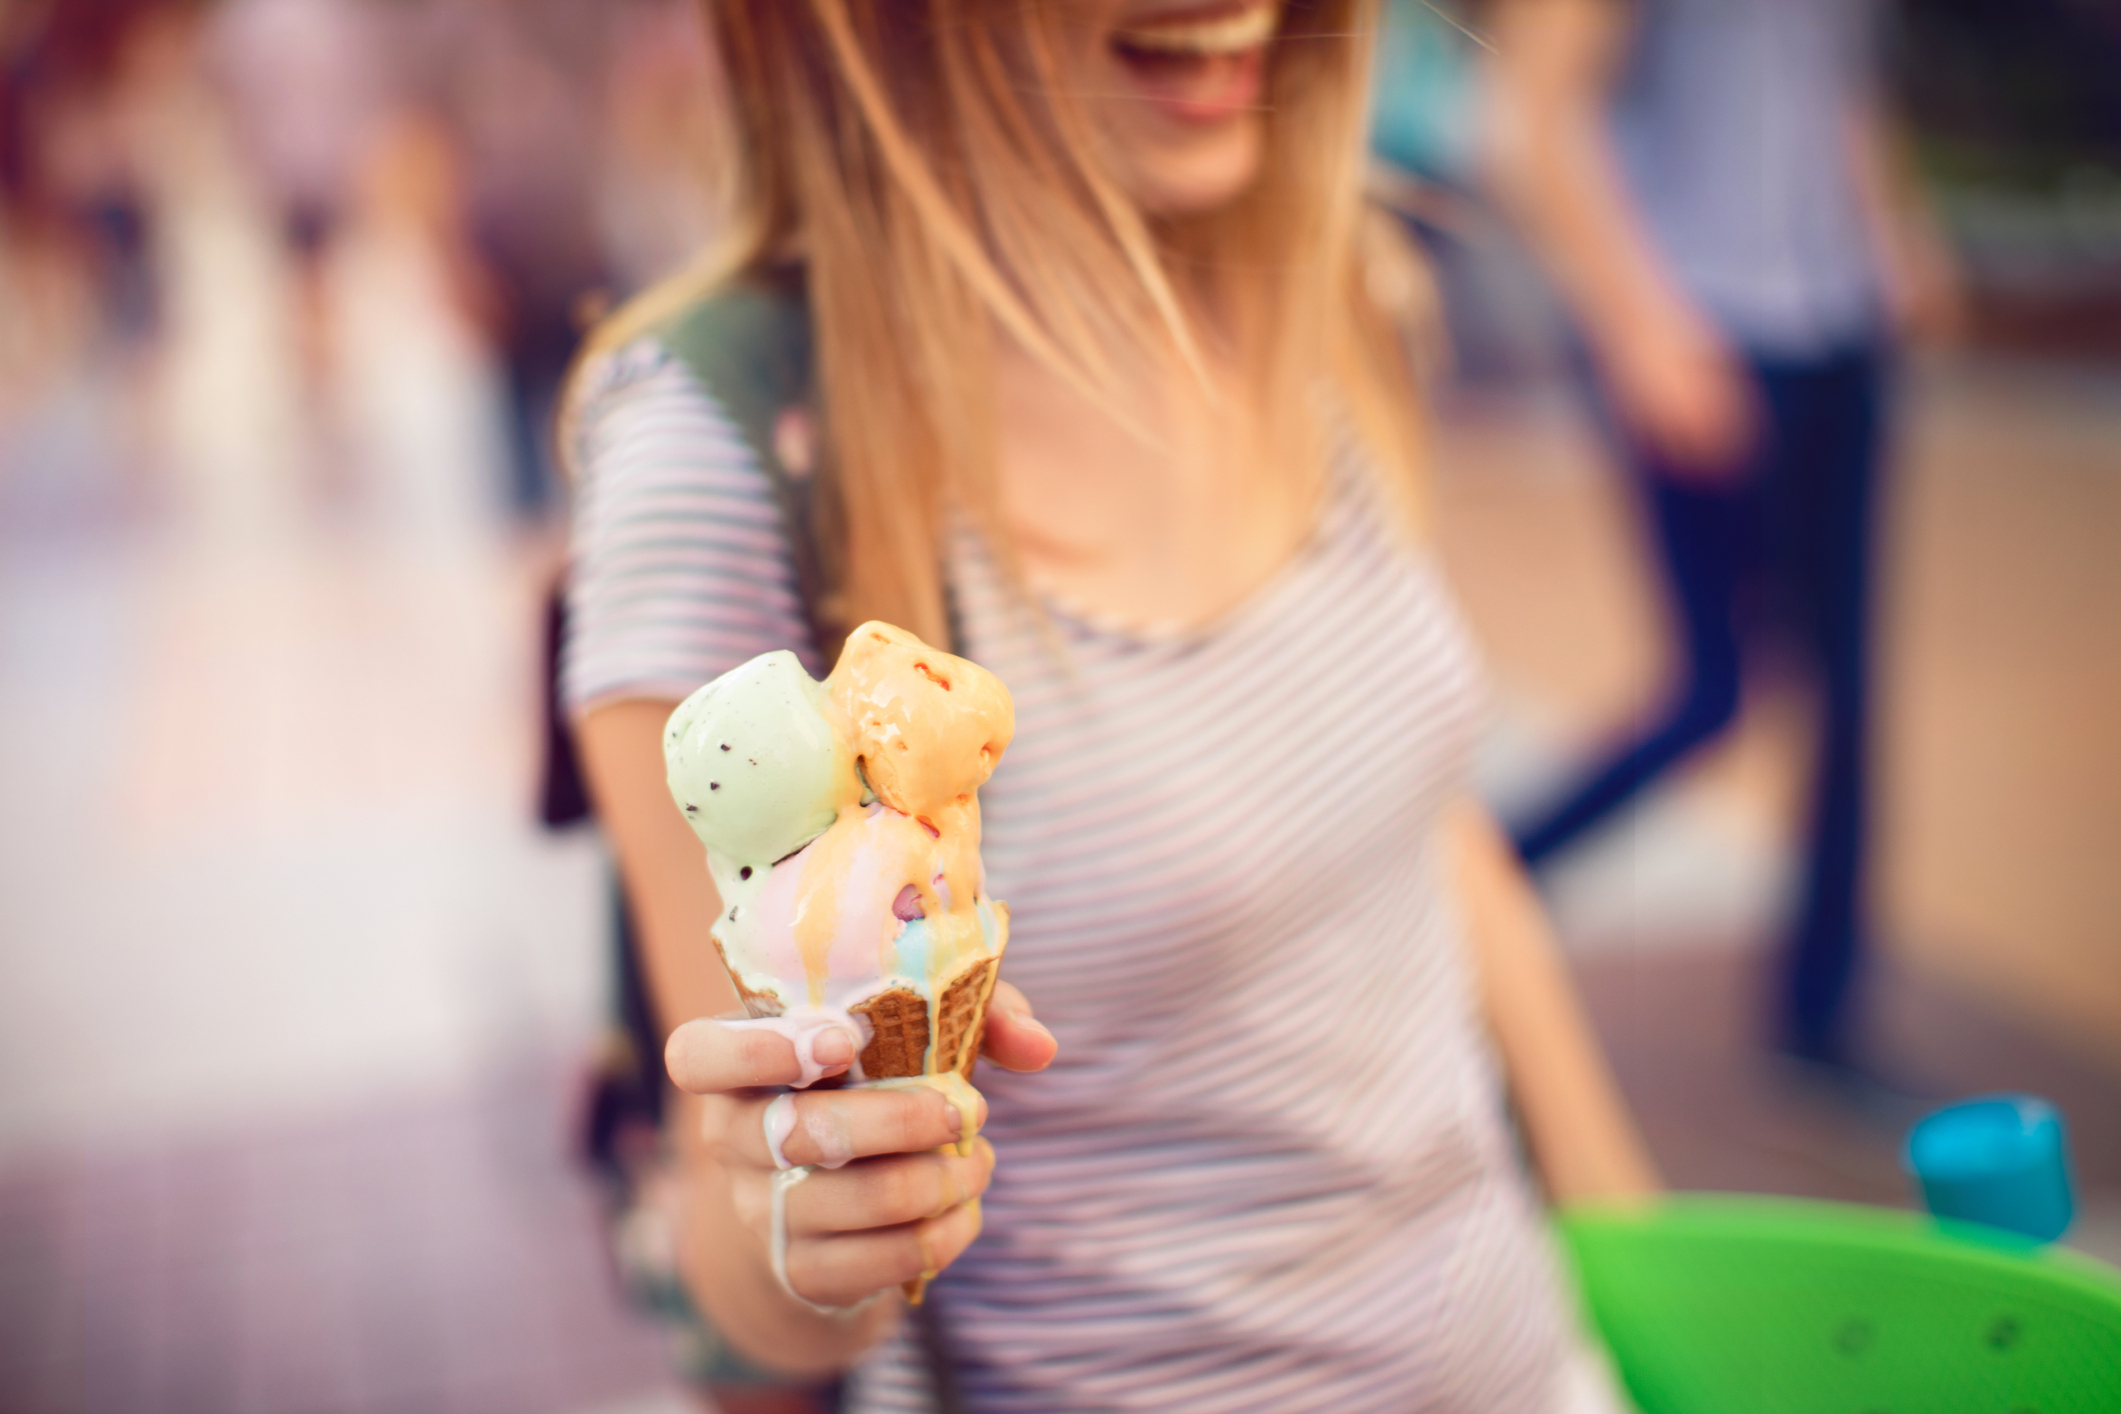 The Pleasure principle: Why the Idea of Ice Cream Melts Our Resistance to Being Social and Having Fun on coldstonesouthflorida.com